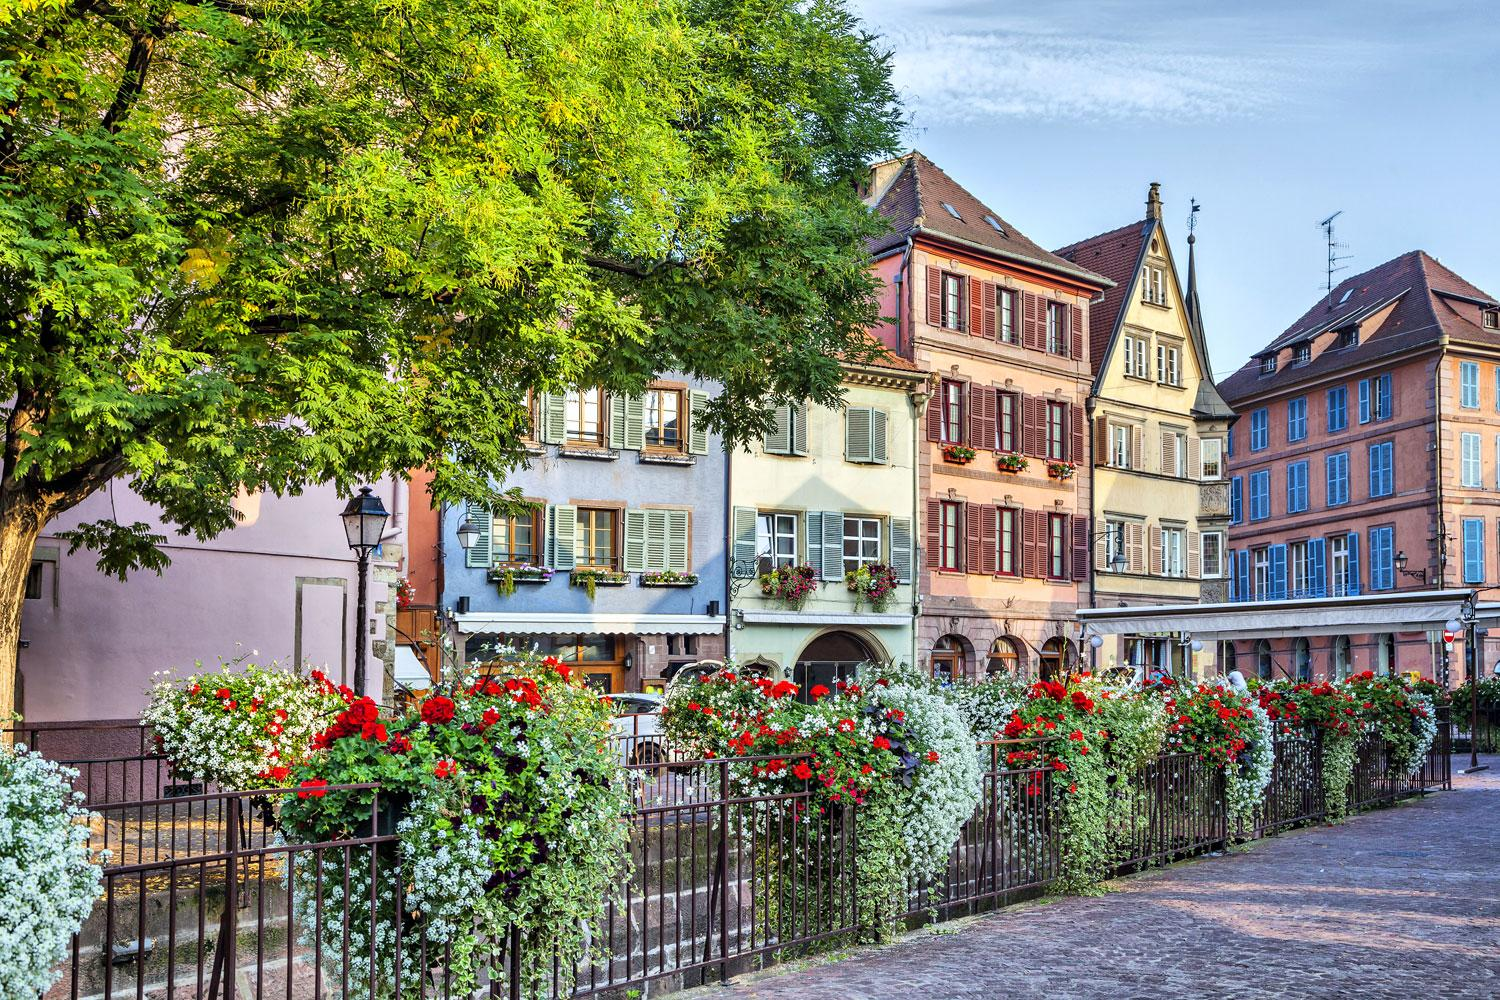 Cycling holiday based in Colmar, Alsace